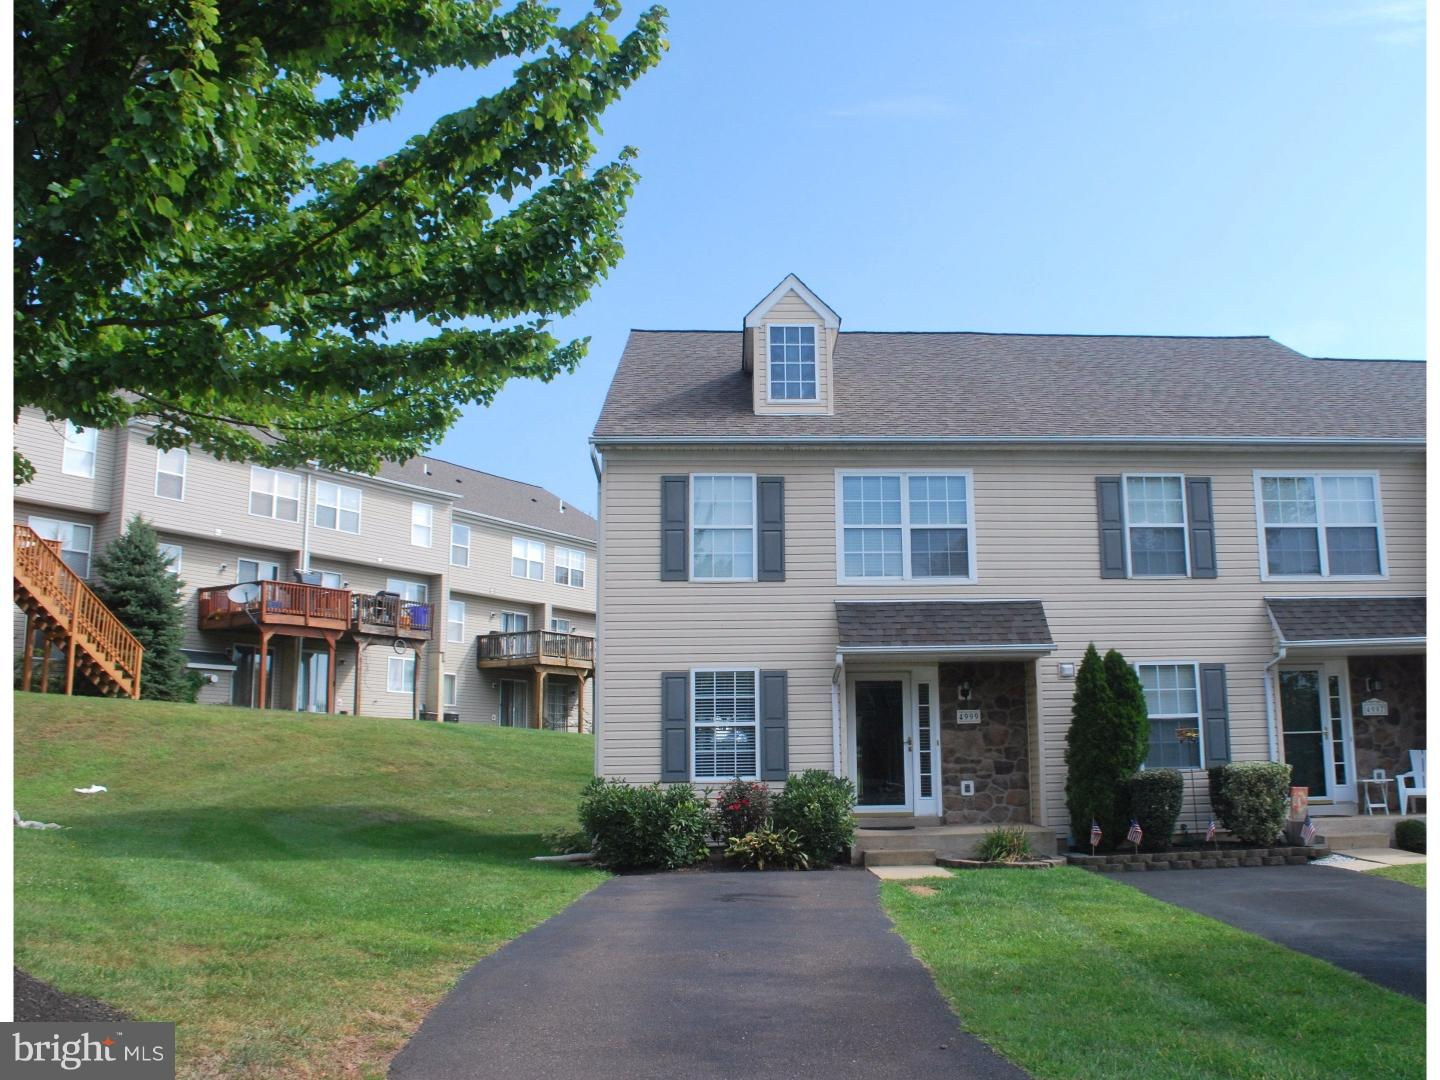 Single Family Home for Rent at 4999 ESTHER REED Drive Doylestown, Pennsylvania 18902 United States